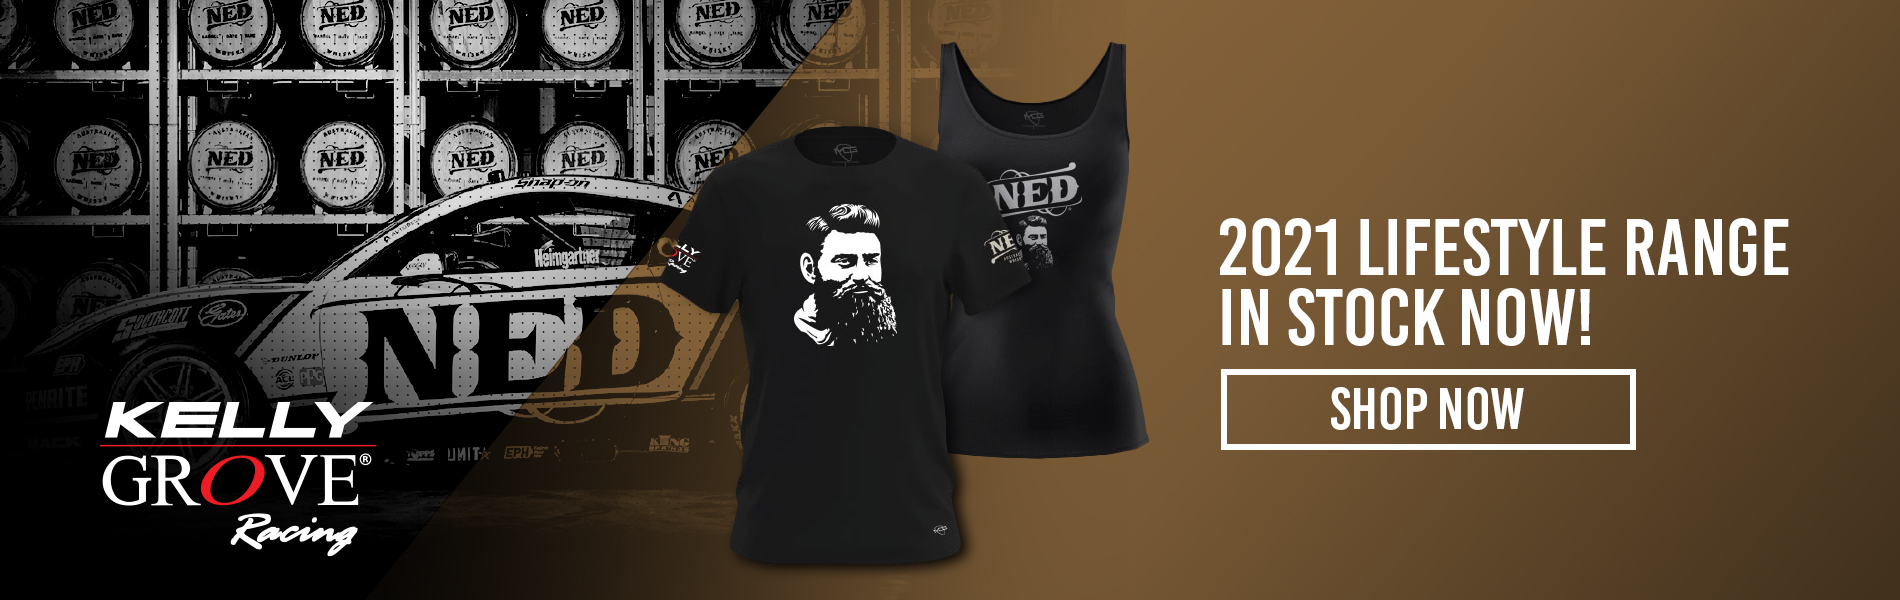 Ned-lifestyle-homepage-banner-3rd